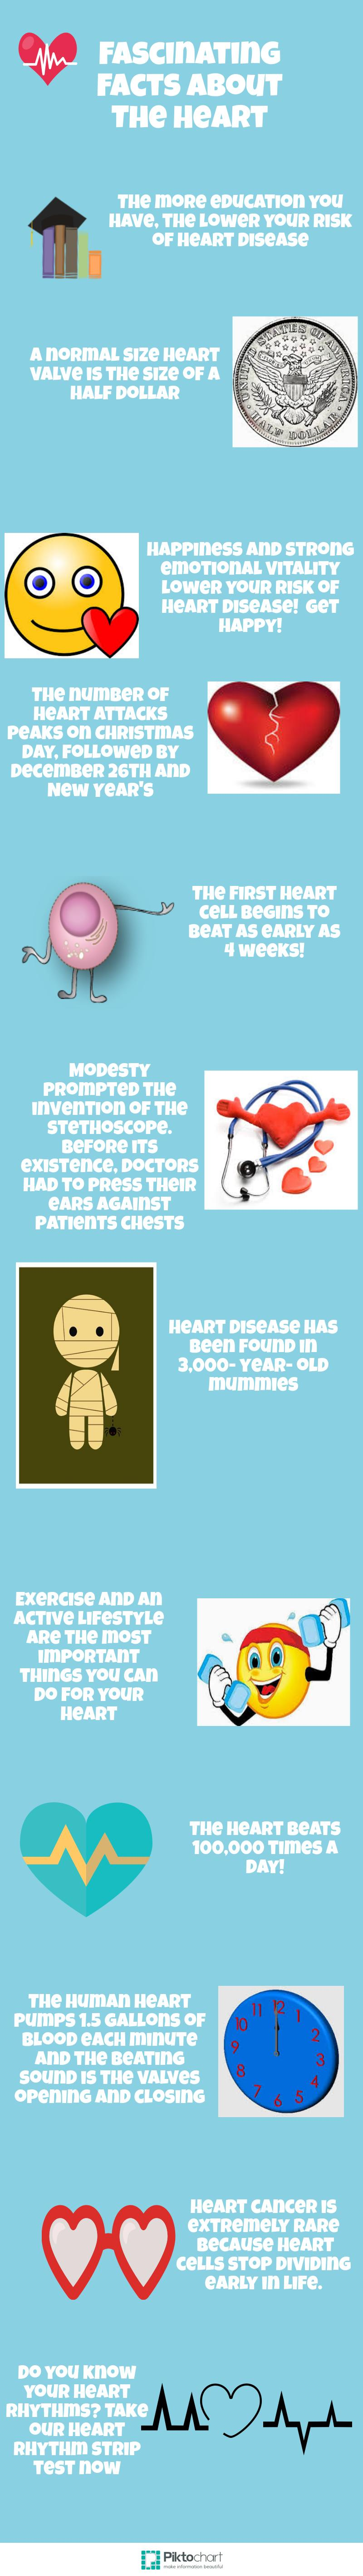 Fascinating Facts about the heart